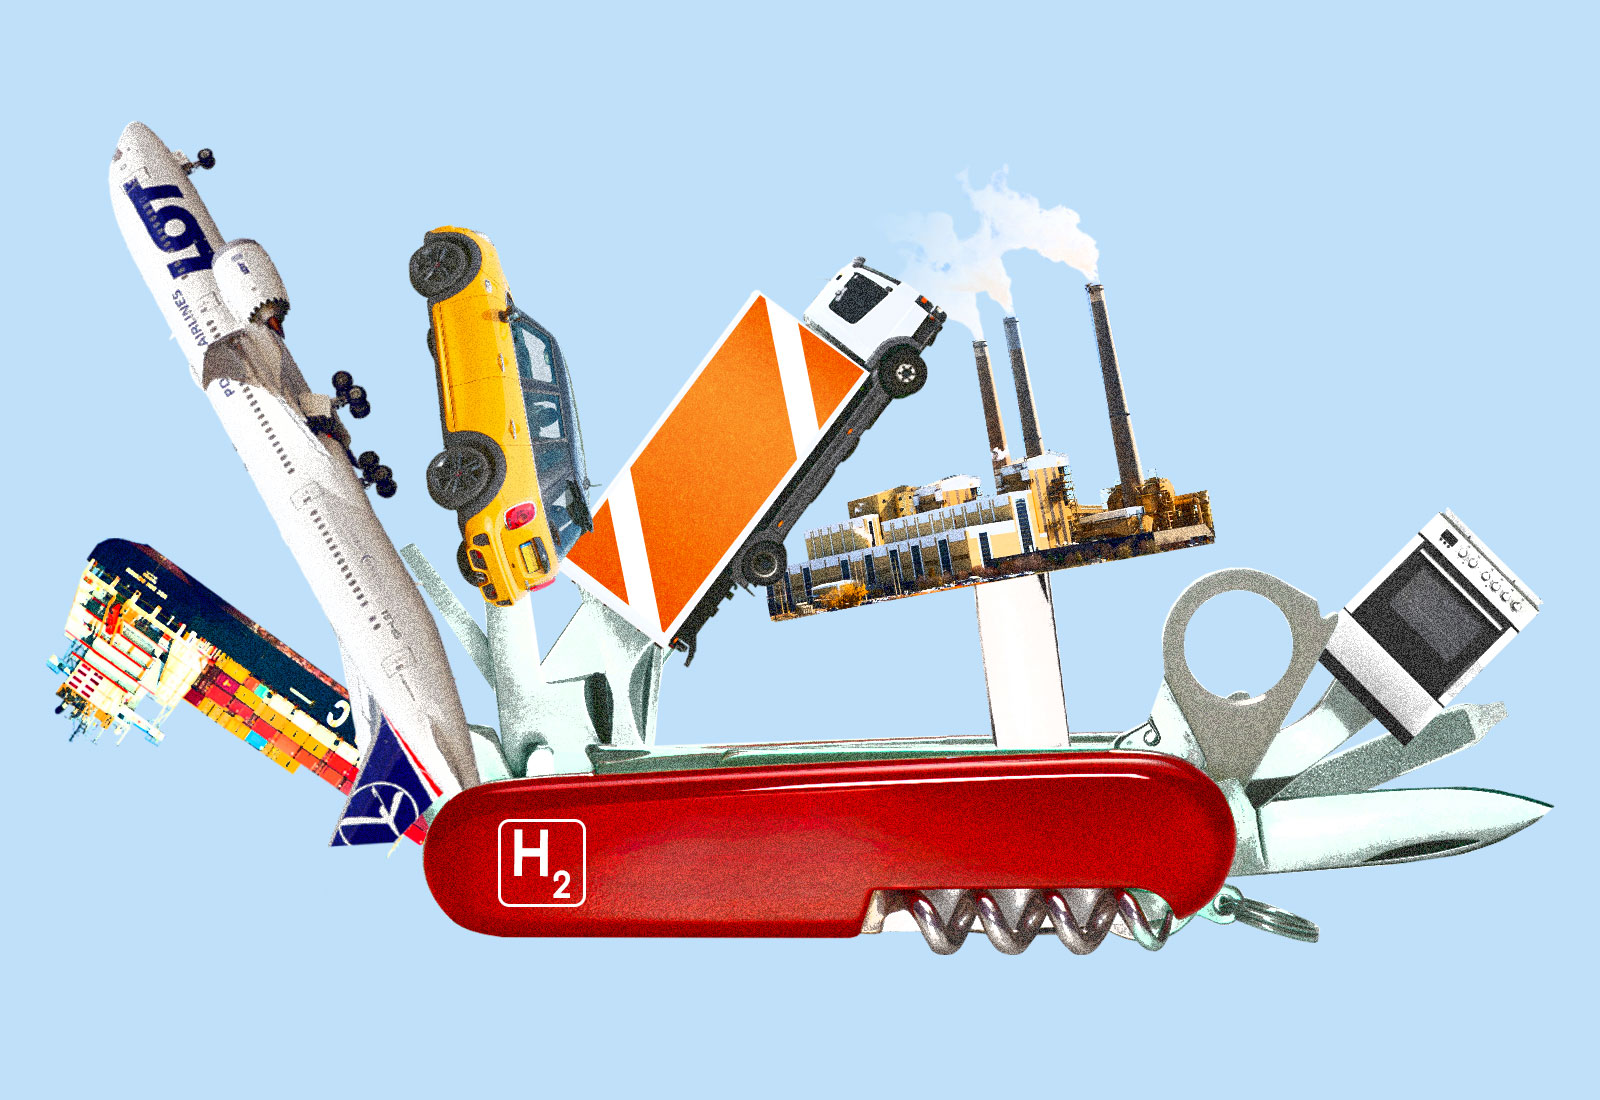 Collage: Swiss Army knife with a cargo ship, airplane, car, truck, factory, and stove as tools